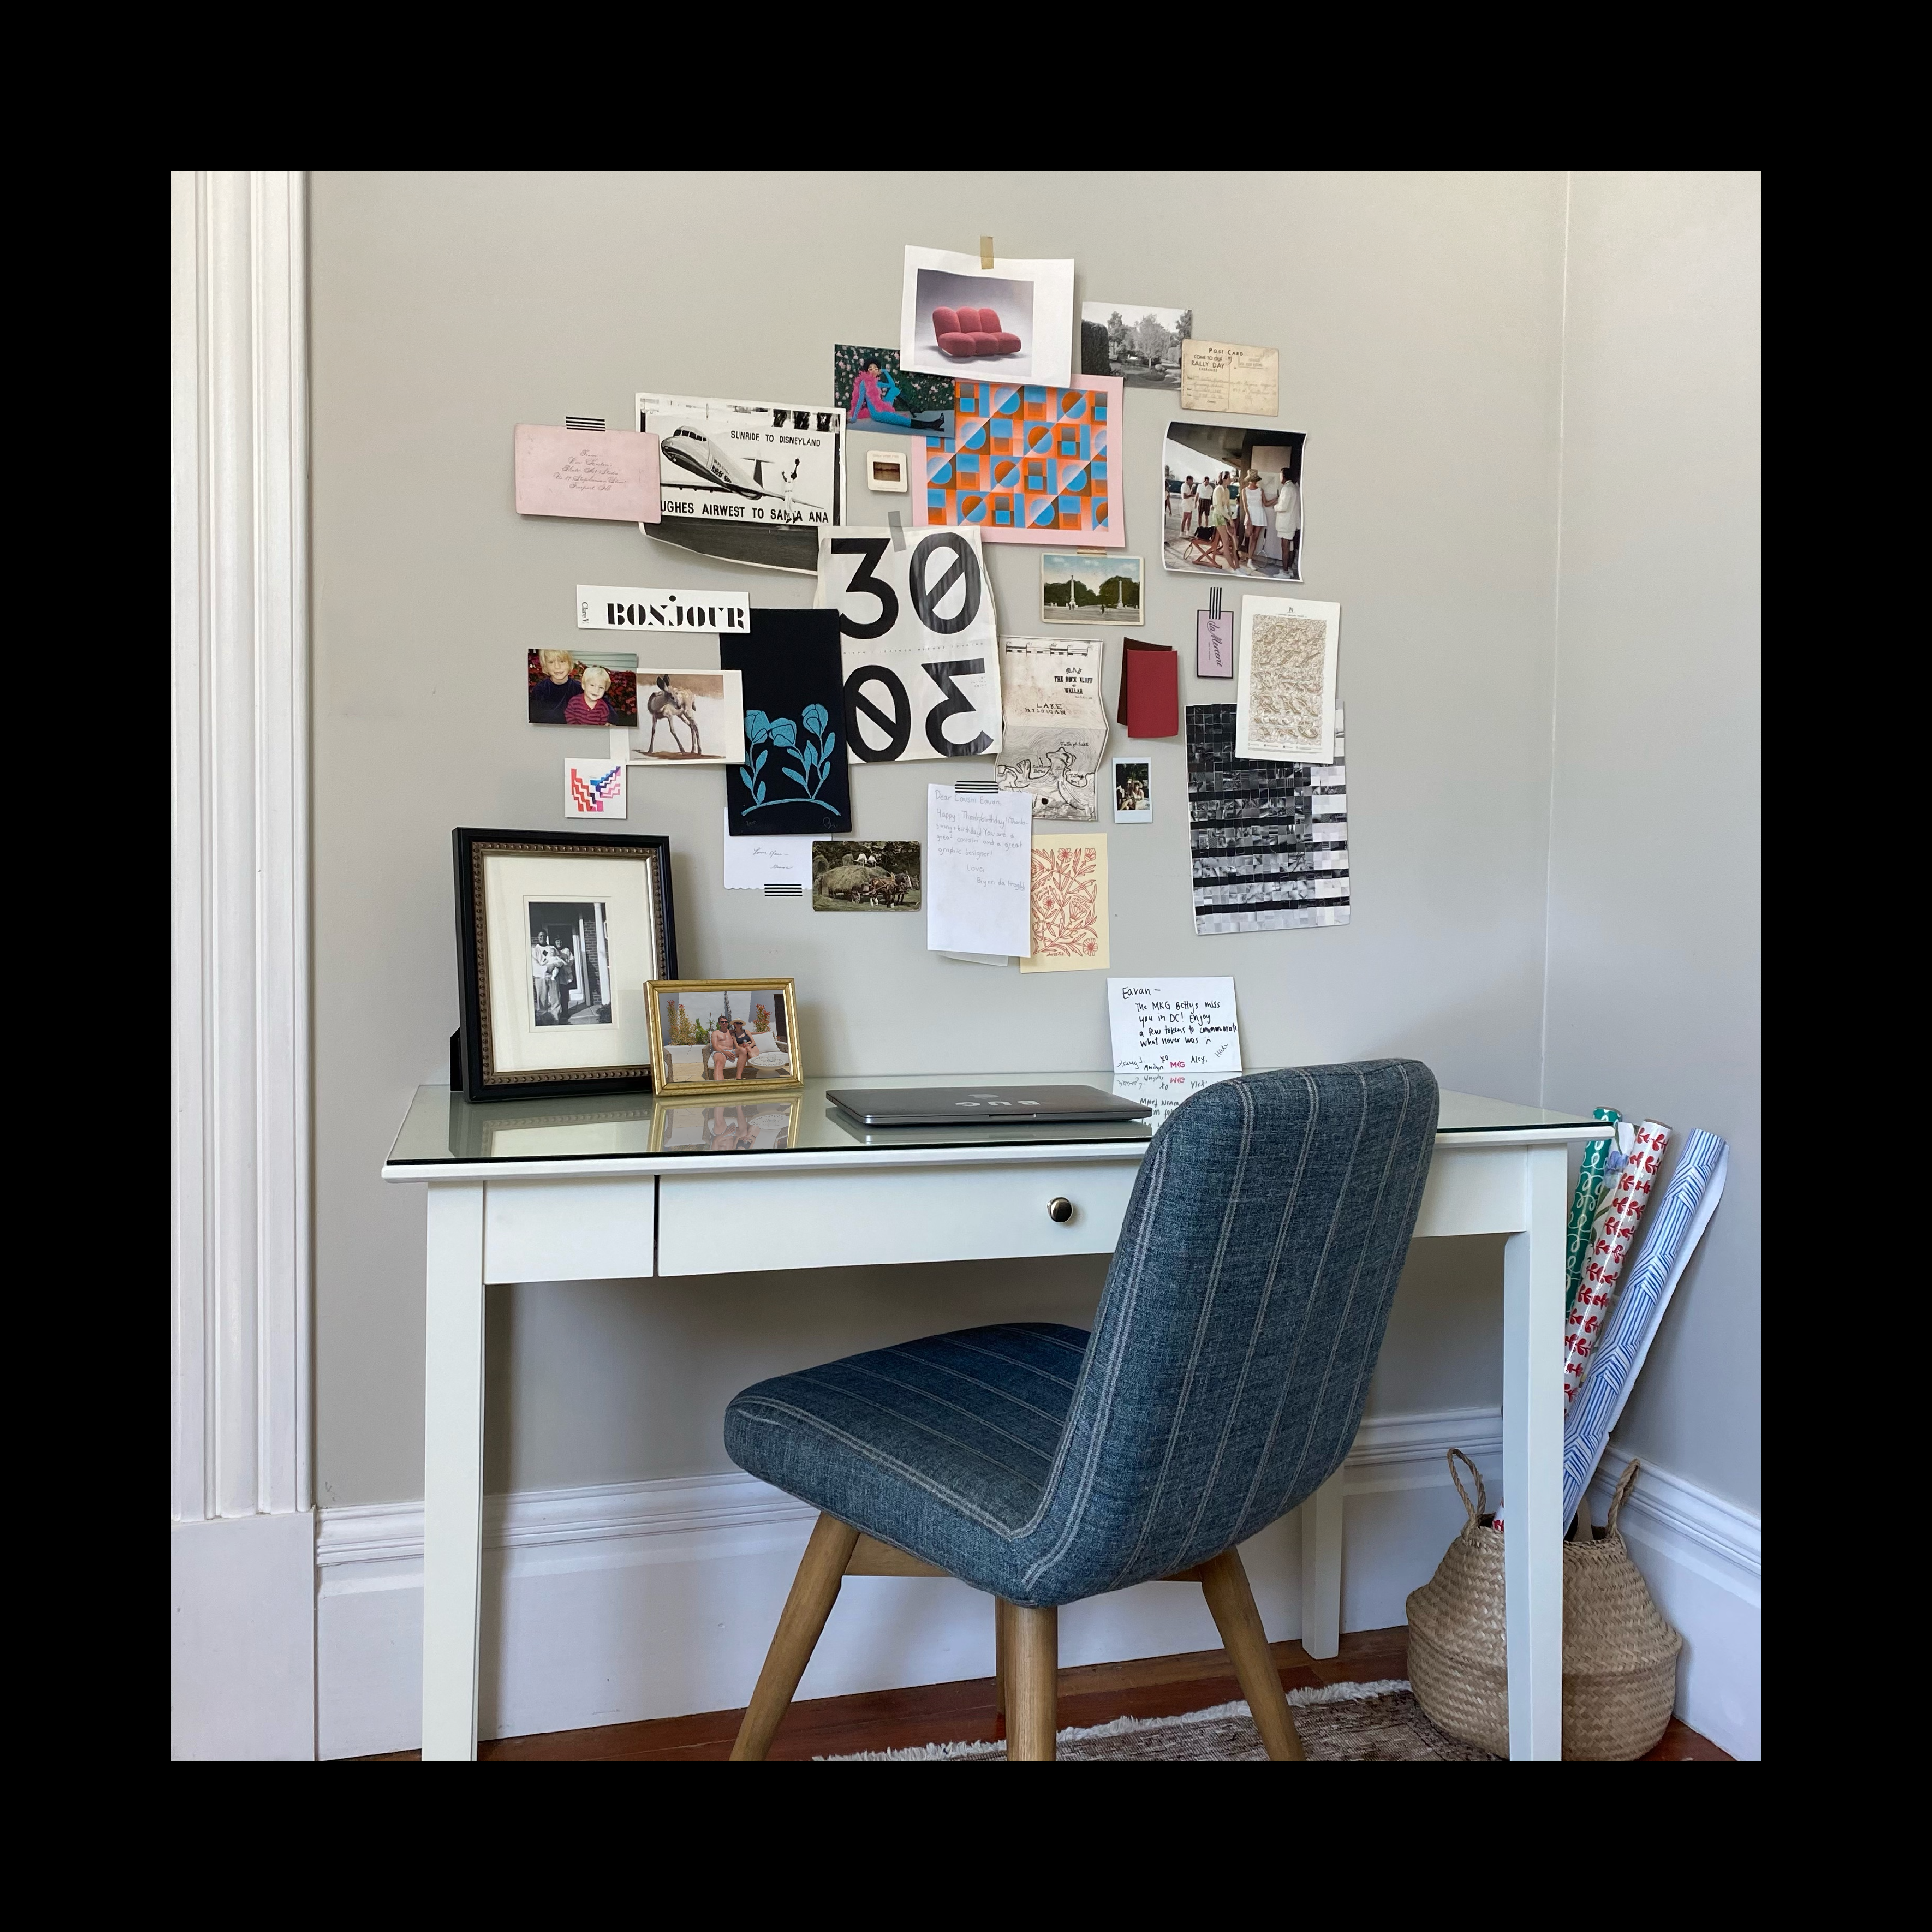 My desk at home. I love an IRL Pinterest board. Tactile things feel especially important these days.